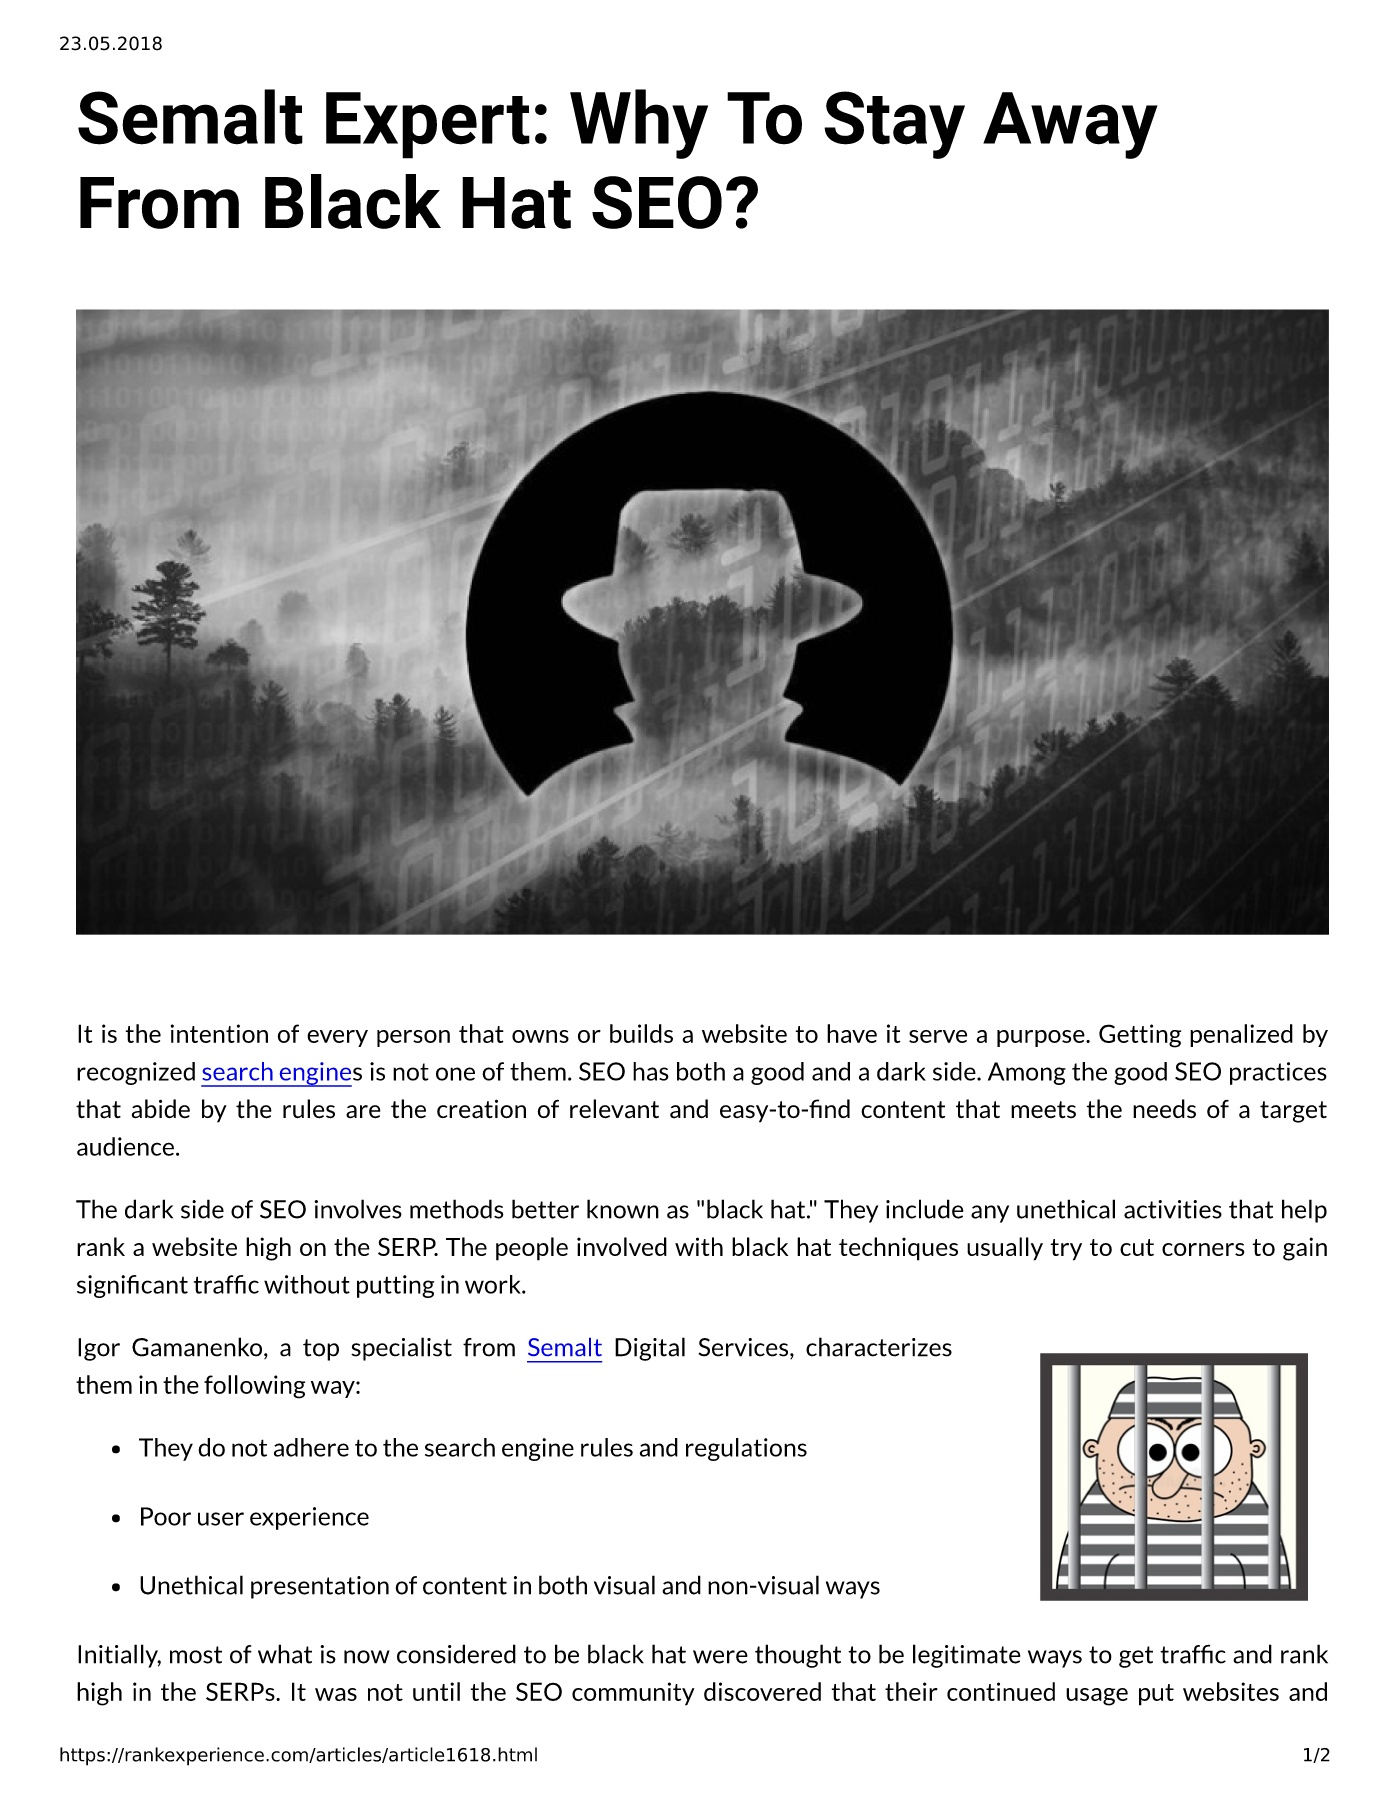 Semalt Expert: Why To Stay Away From Black Hat SEO?